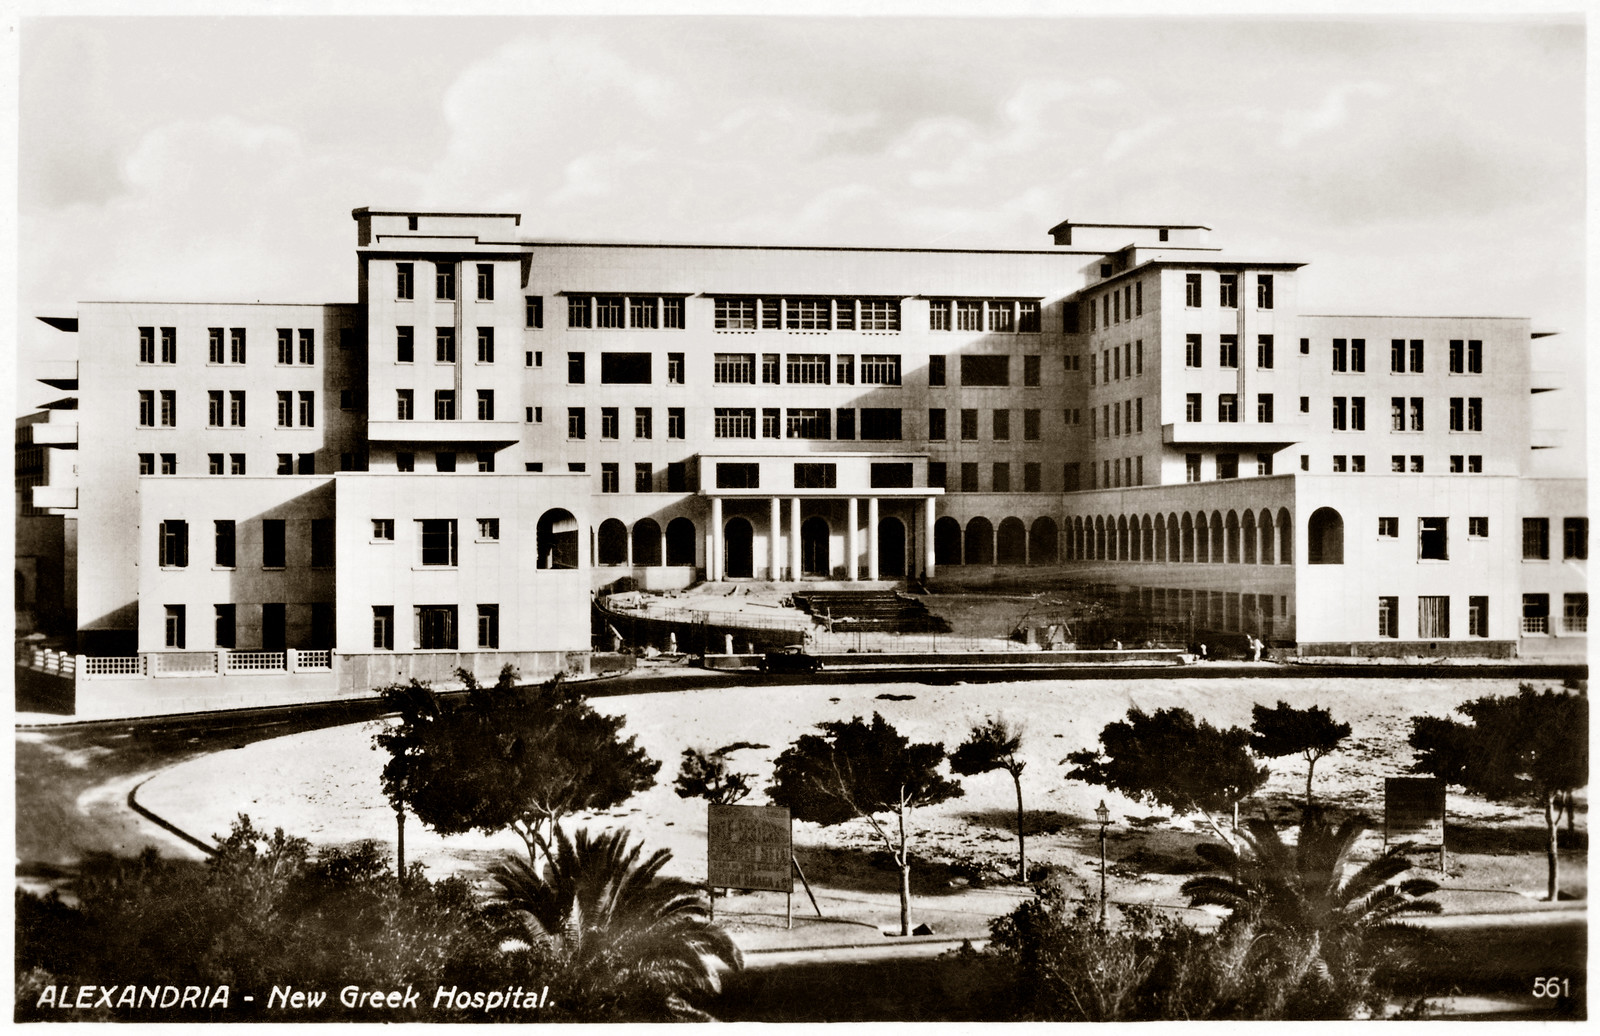 24 Mar 1941 - No. 561 'ALEXANDRIA - New Greek Hospital', Egypt(real photo postcard, circa 1930s)